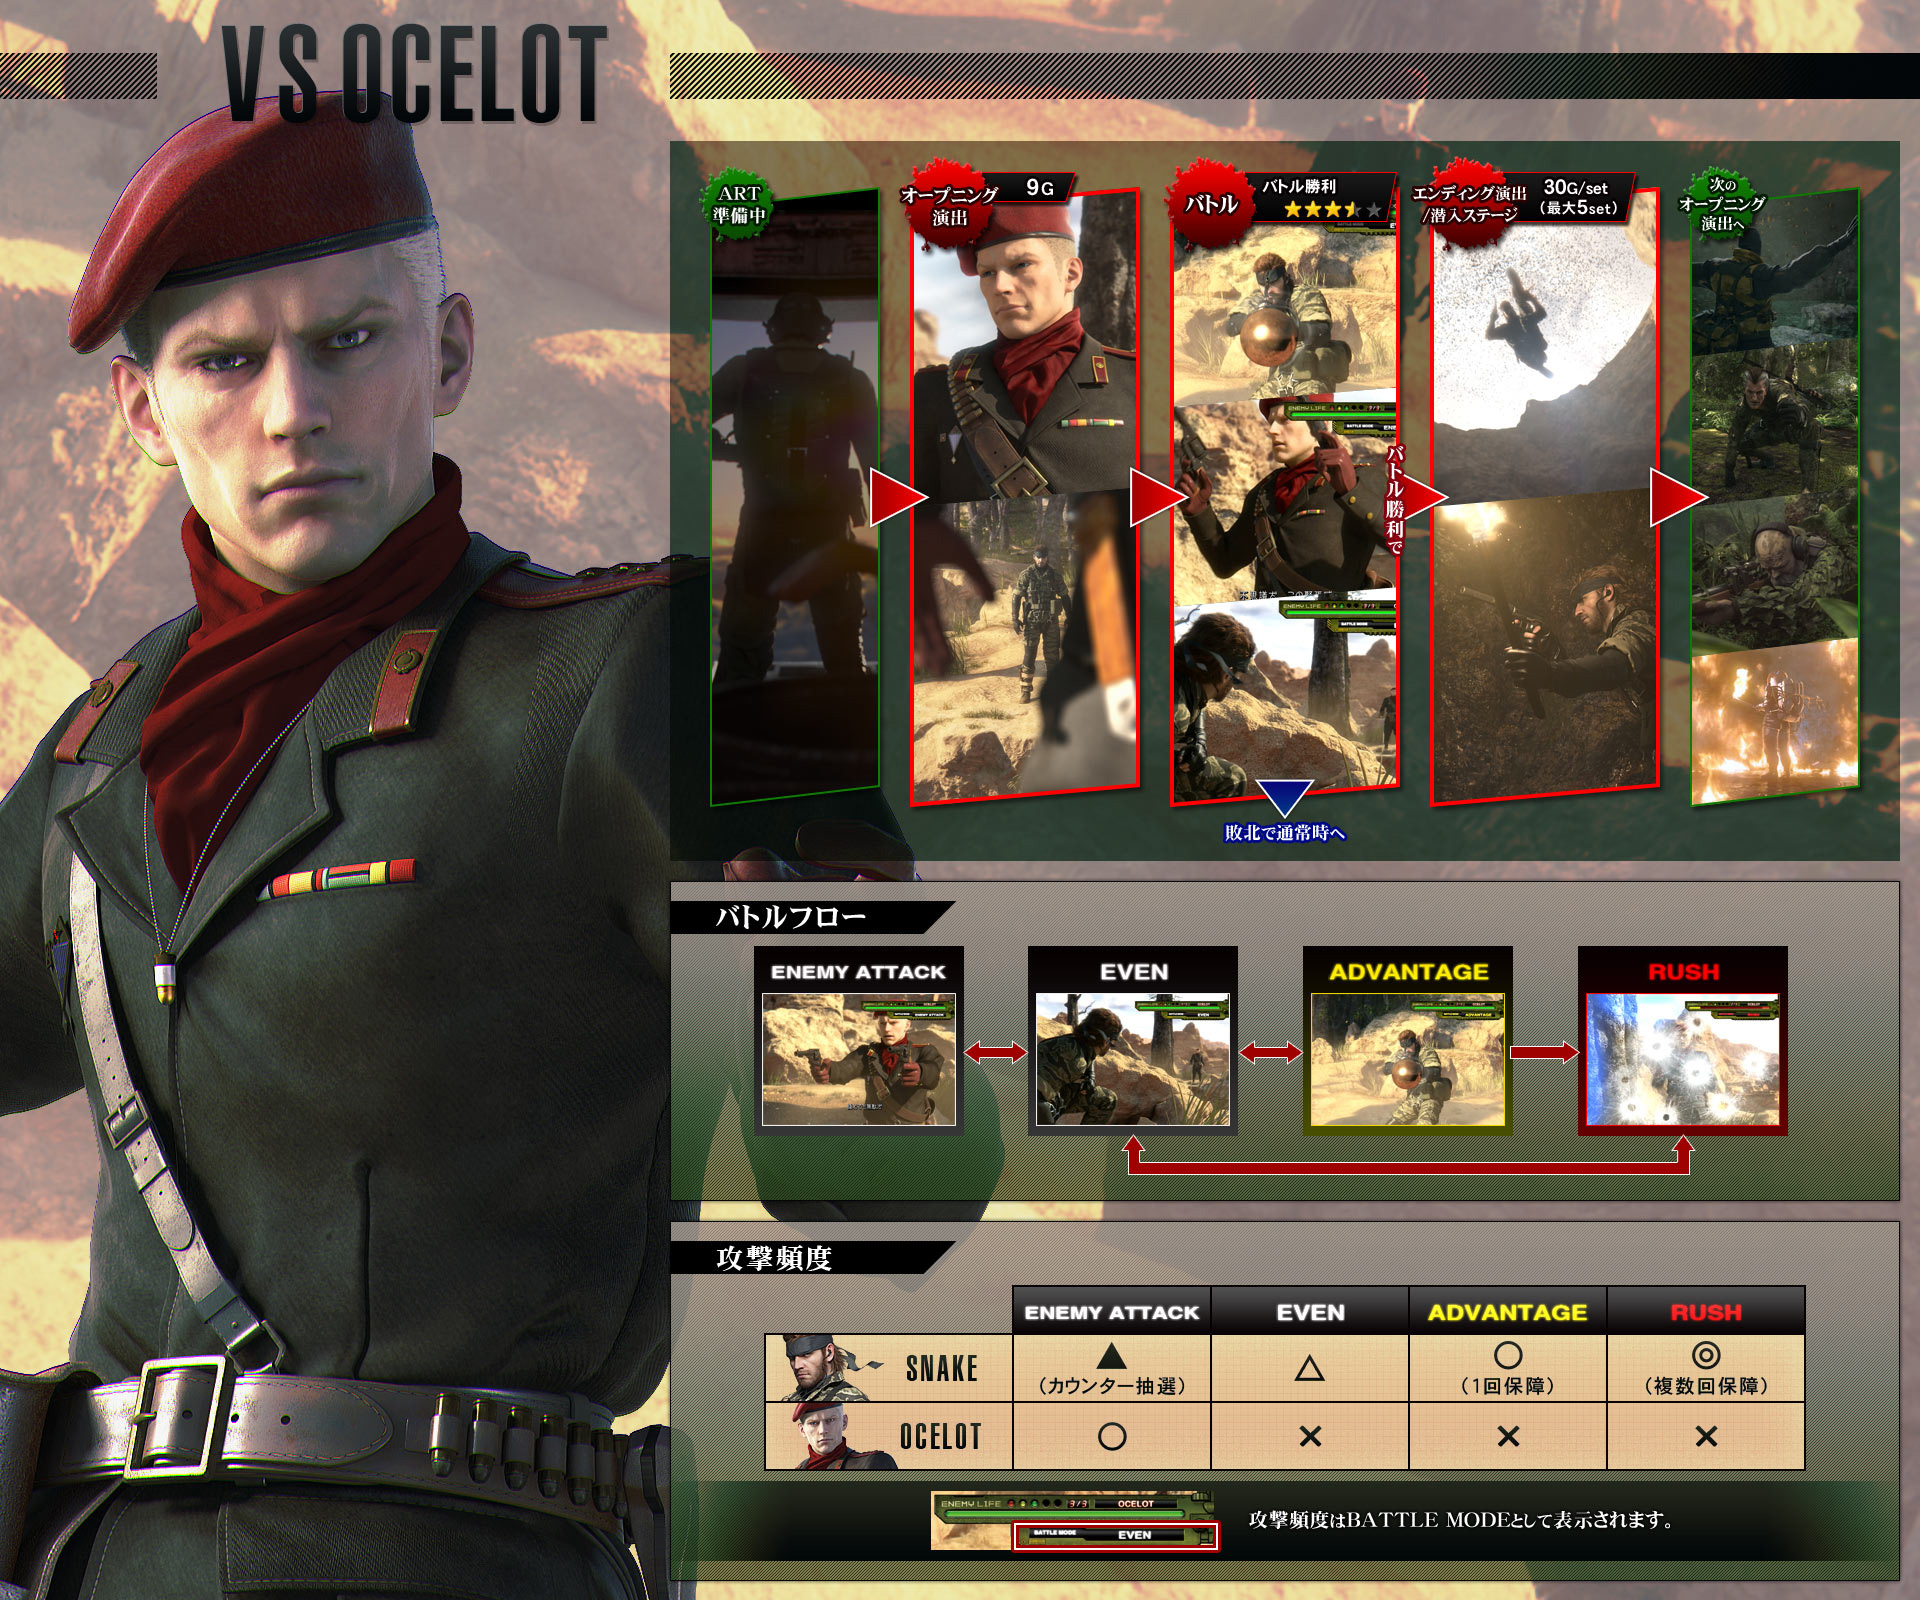 metal-gear-solid-snake-eater-pachislot-art-ocelot-battle